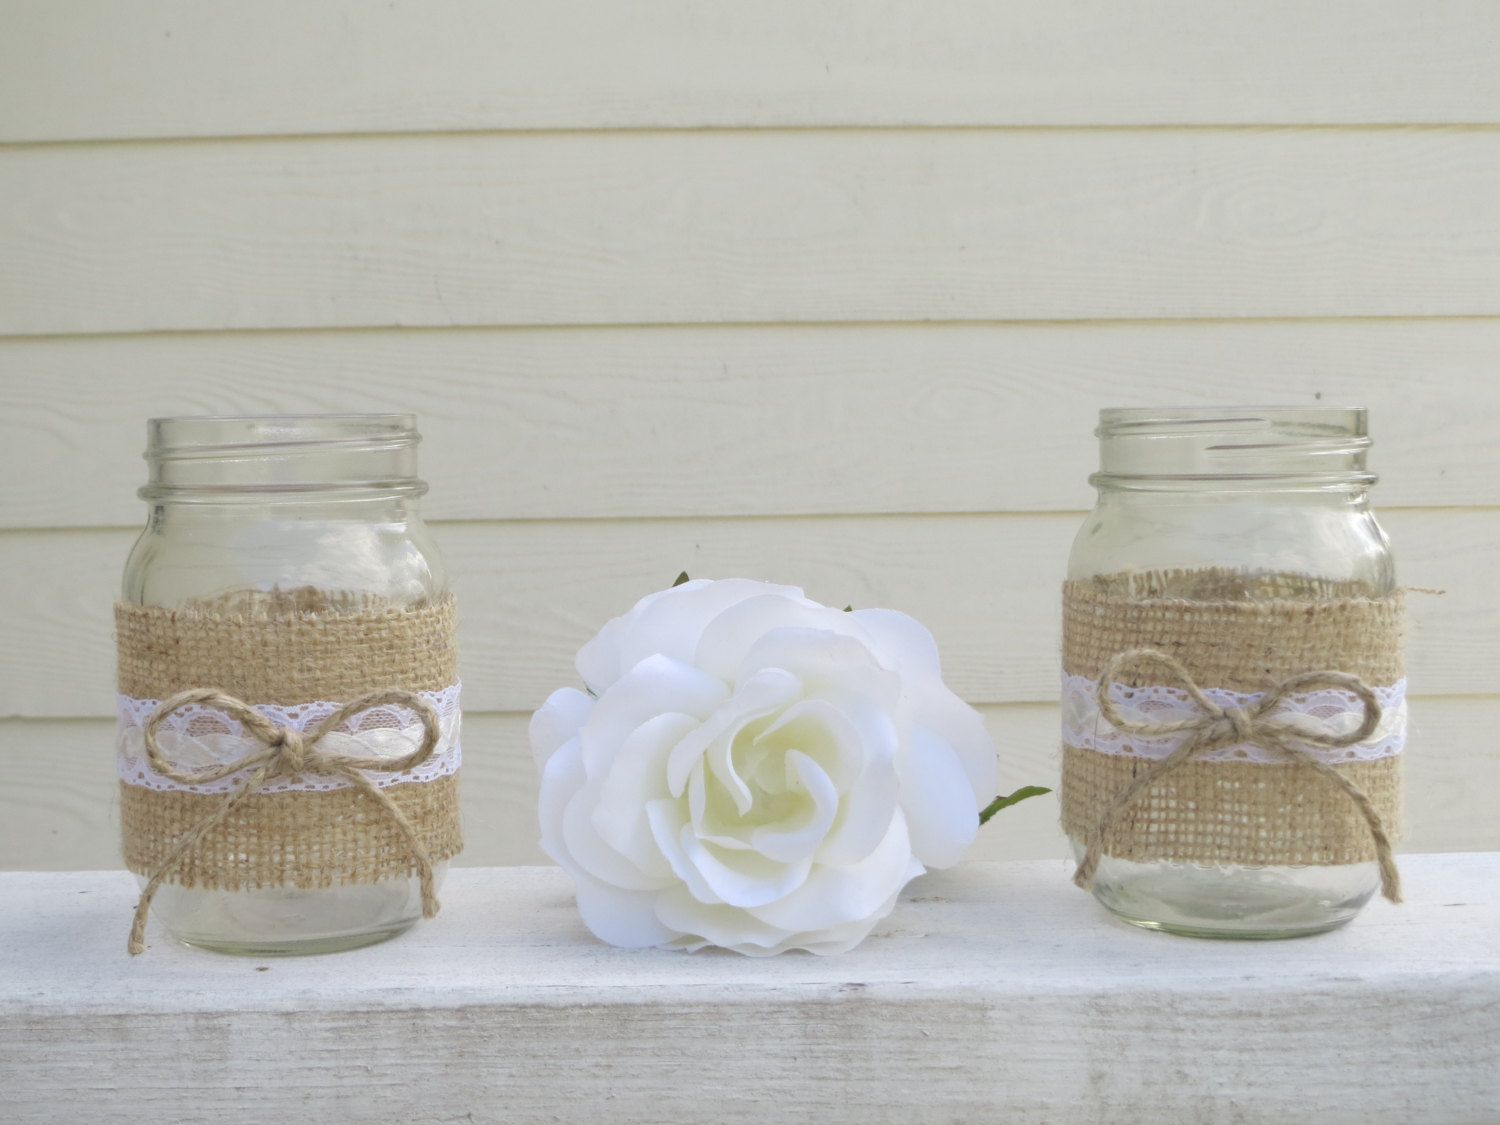 western wedding centerpieces in mason jars | Burlap and Lace Mason ...